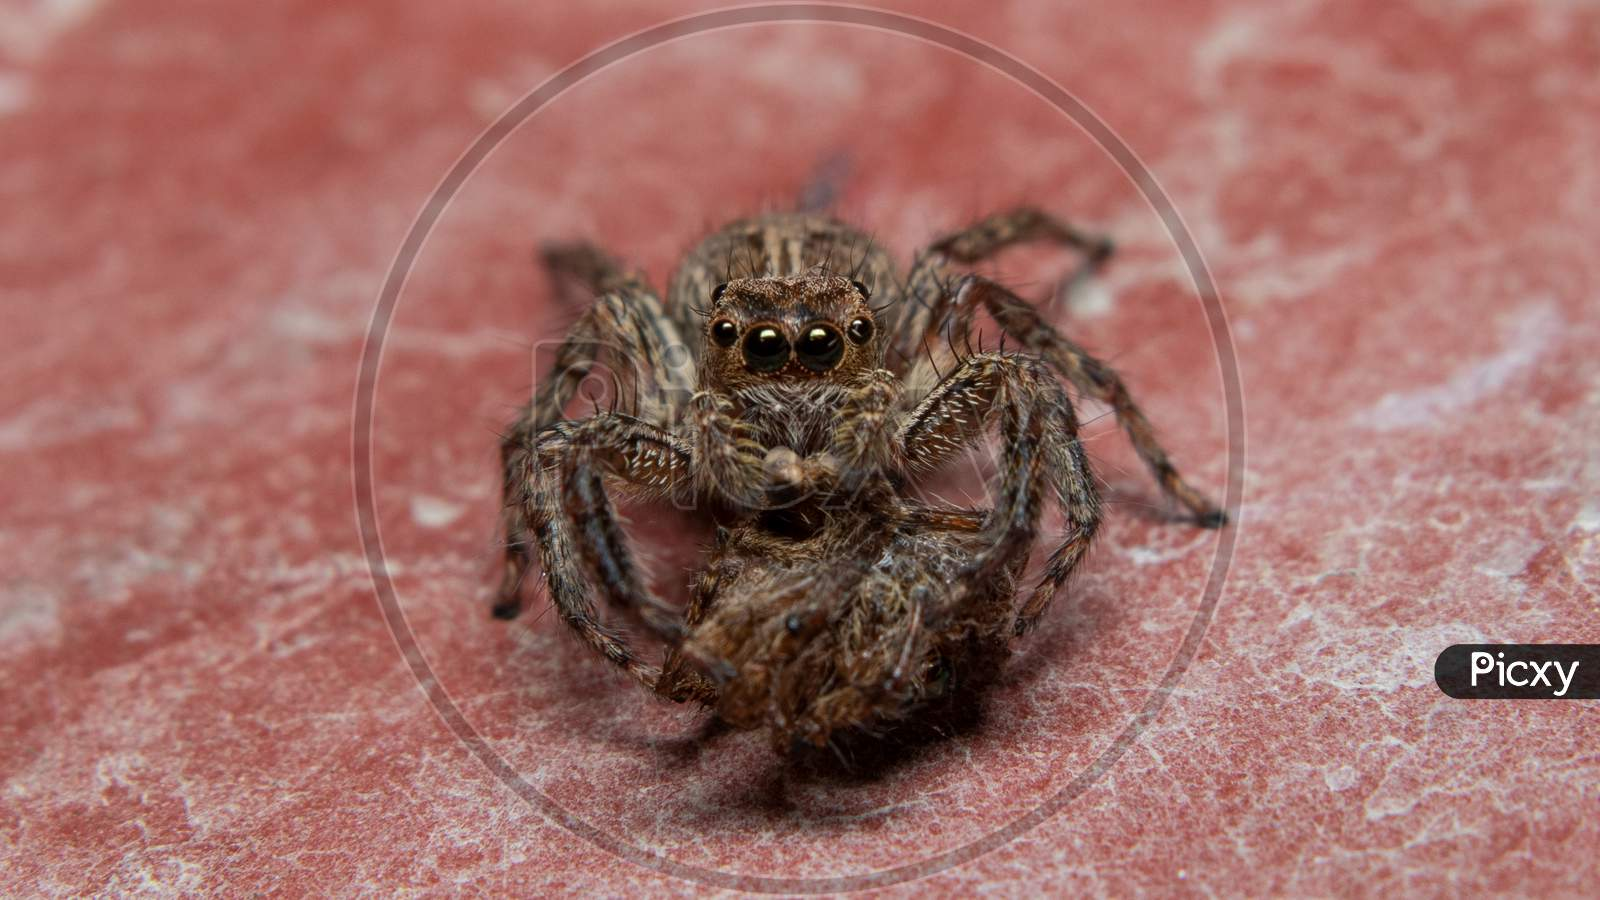 Female Spider Eats Male One